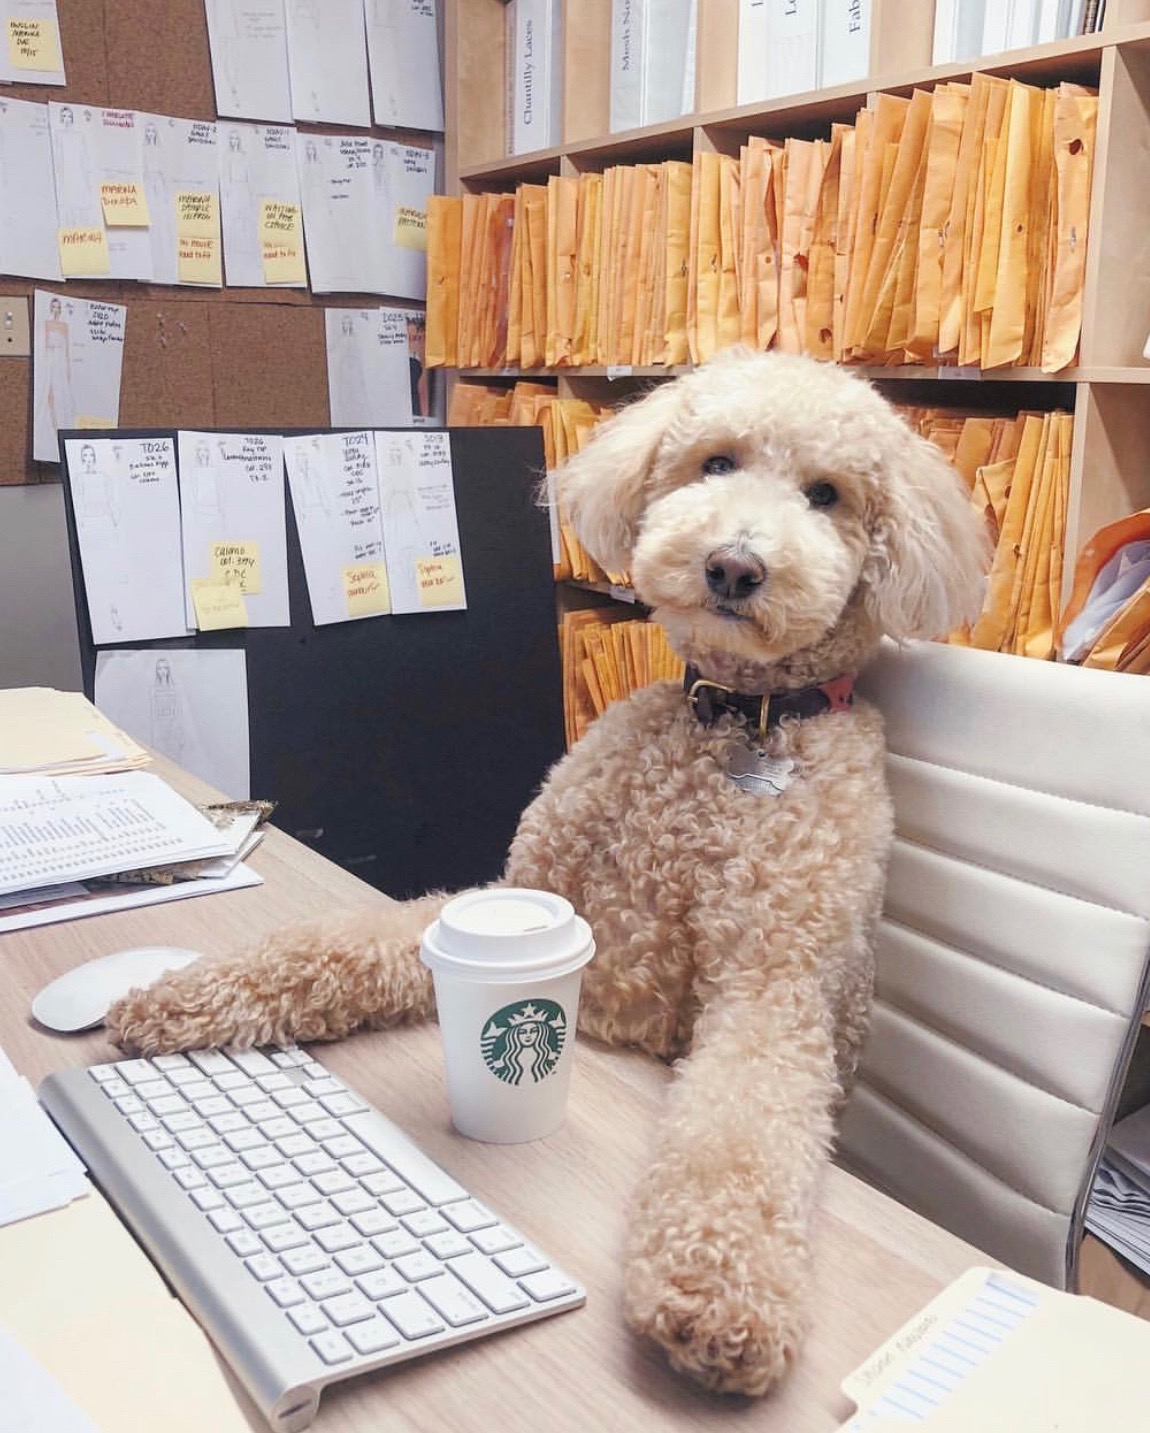 Our CFO Tucker, hard at work crunching the numbers